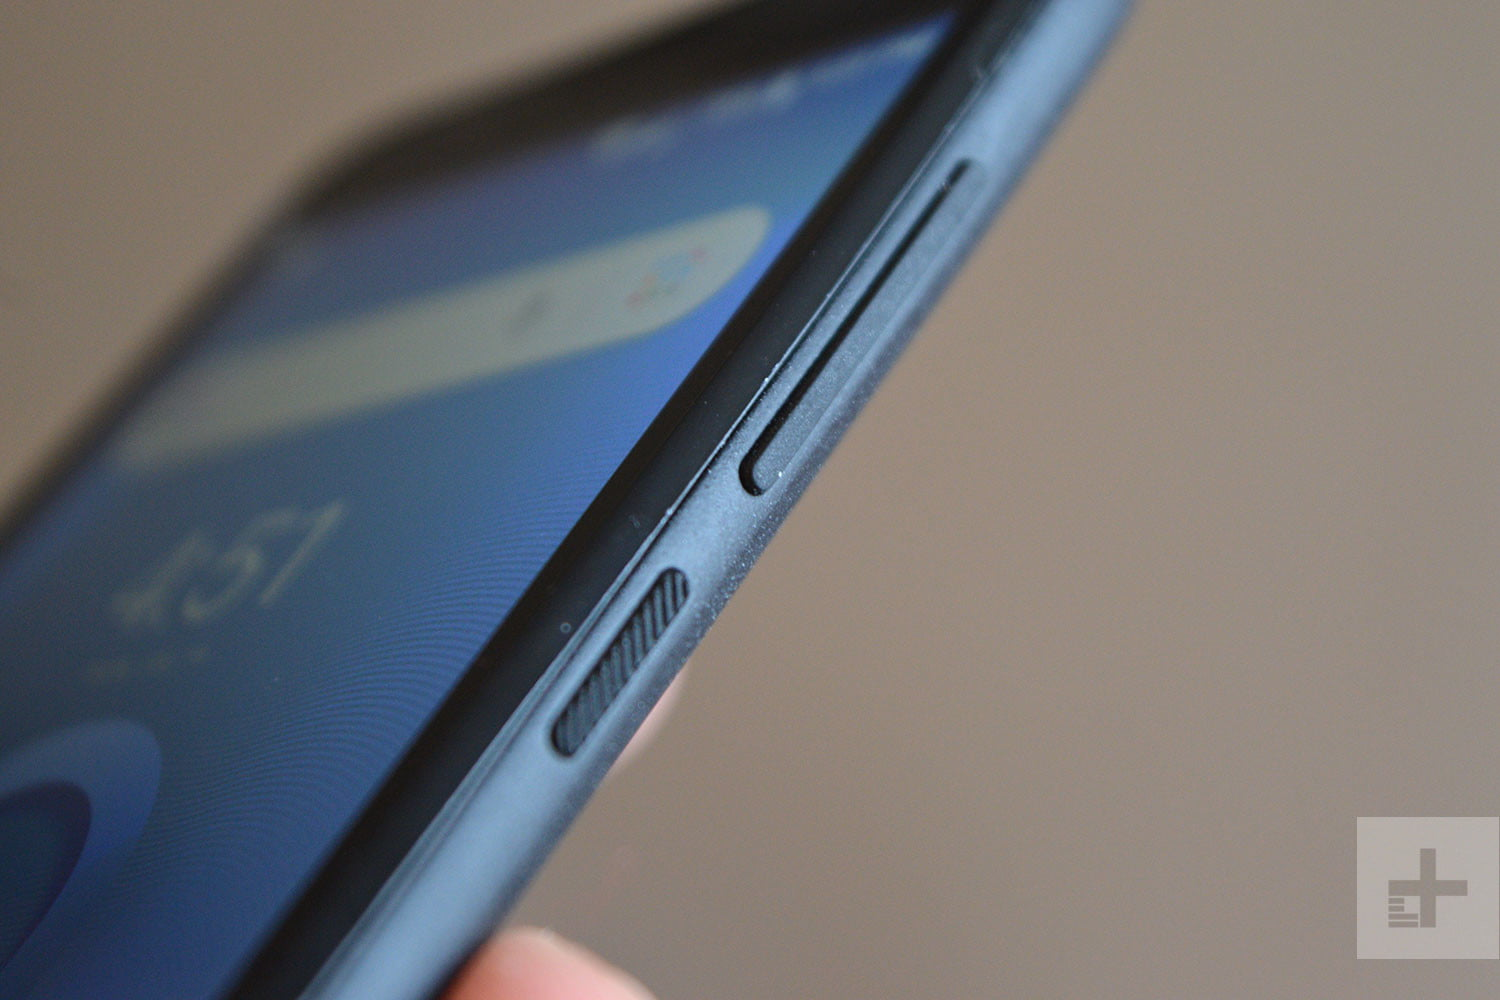 Alcatel 1X (Android Go) Review: Cheap but Flawed | Digital